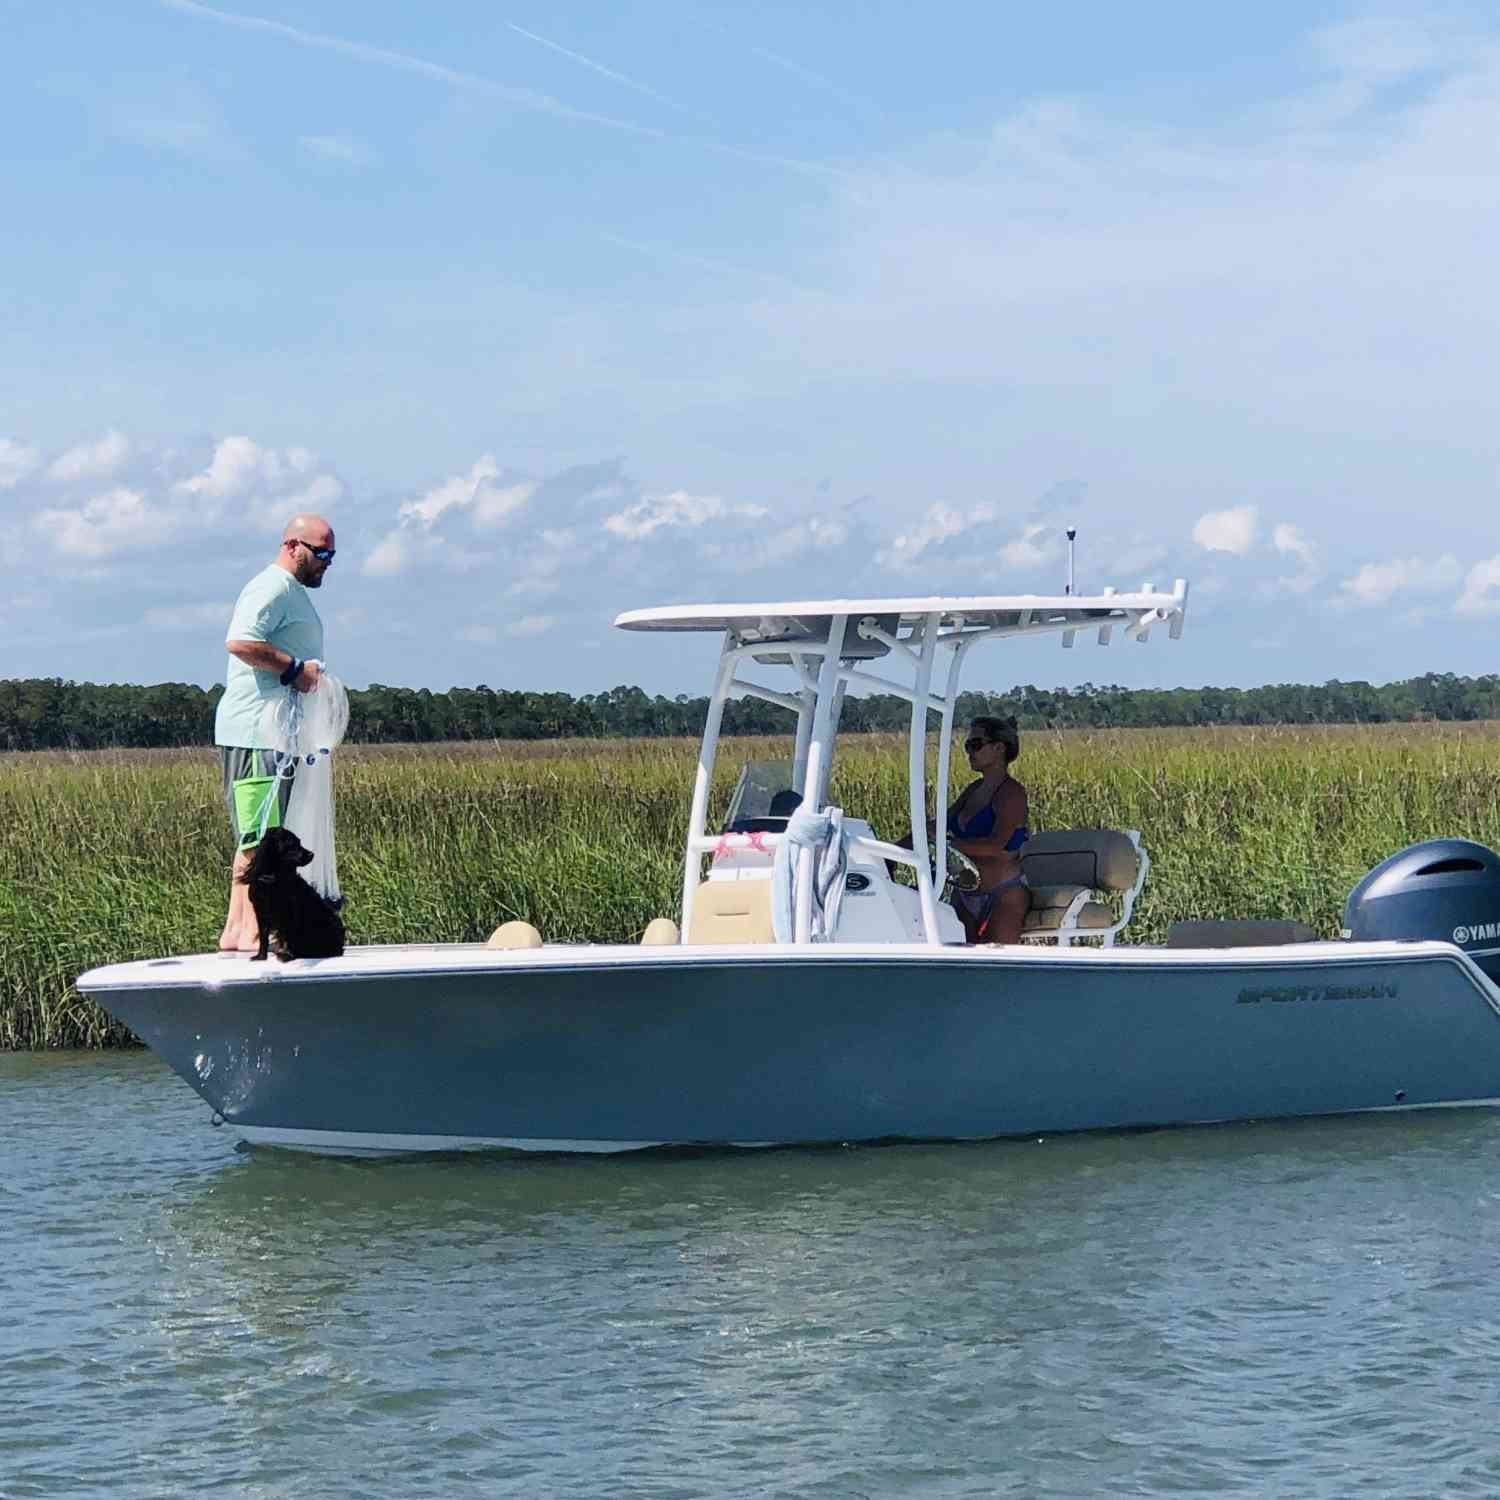 Title: Teamwork - On board their Sportsman Open 212 Center Console - Location: Charleston, SC. Participating in the Photo Contest #SportsmanJuly2019